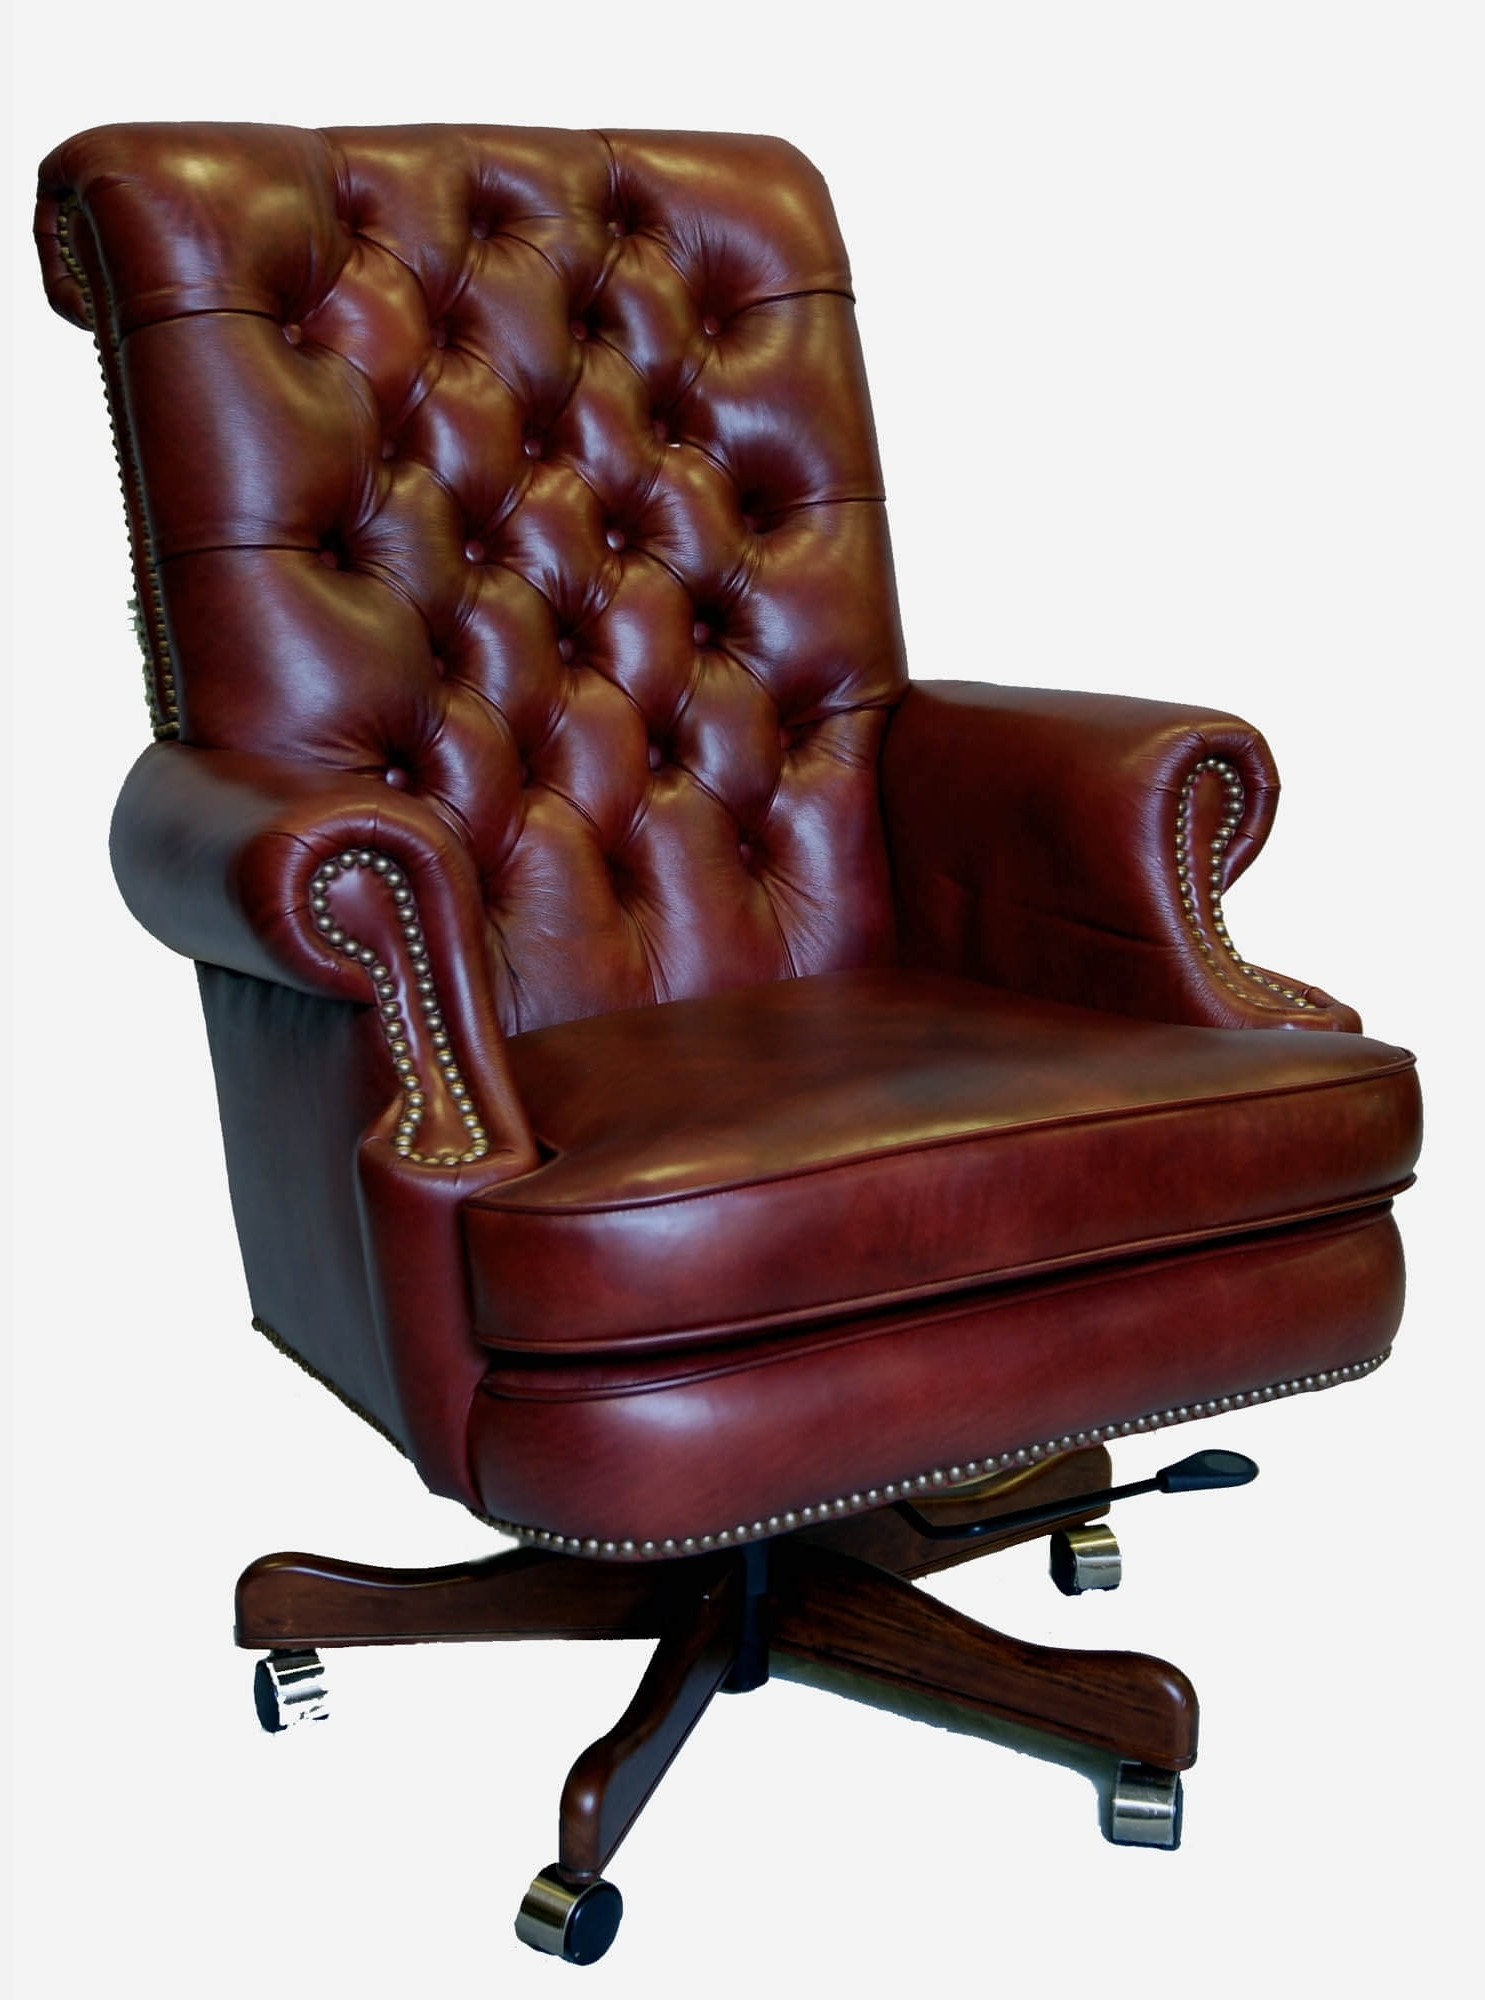 Preferred Office Chair Guide & How To Buy A Desk Chair + Top 10 Chairs With Luxury Executive Office Chairs (View 6 of 20)